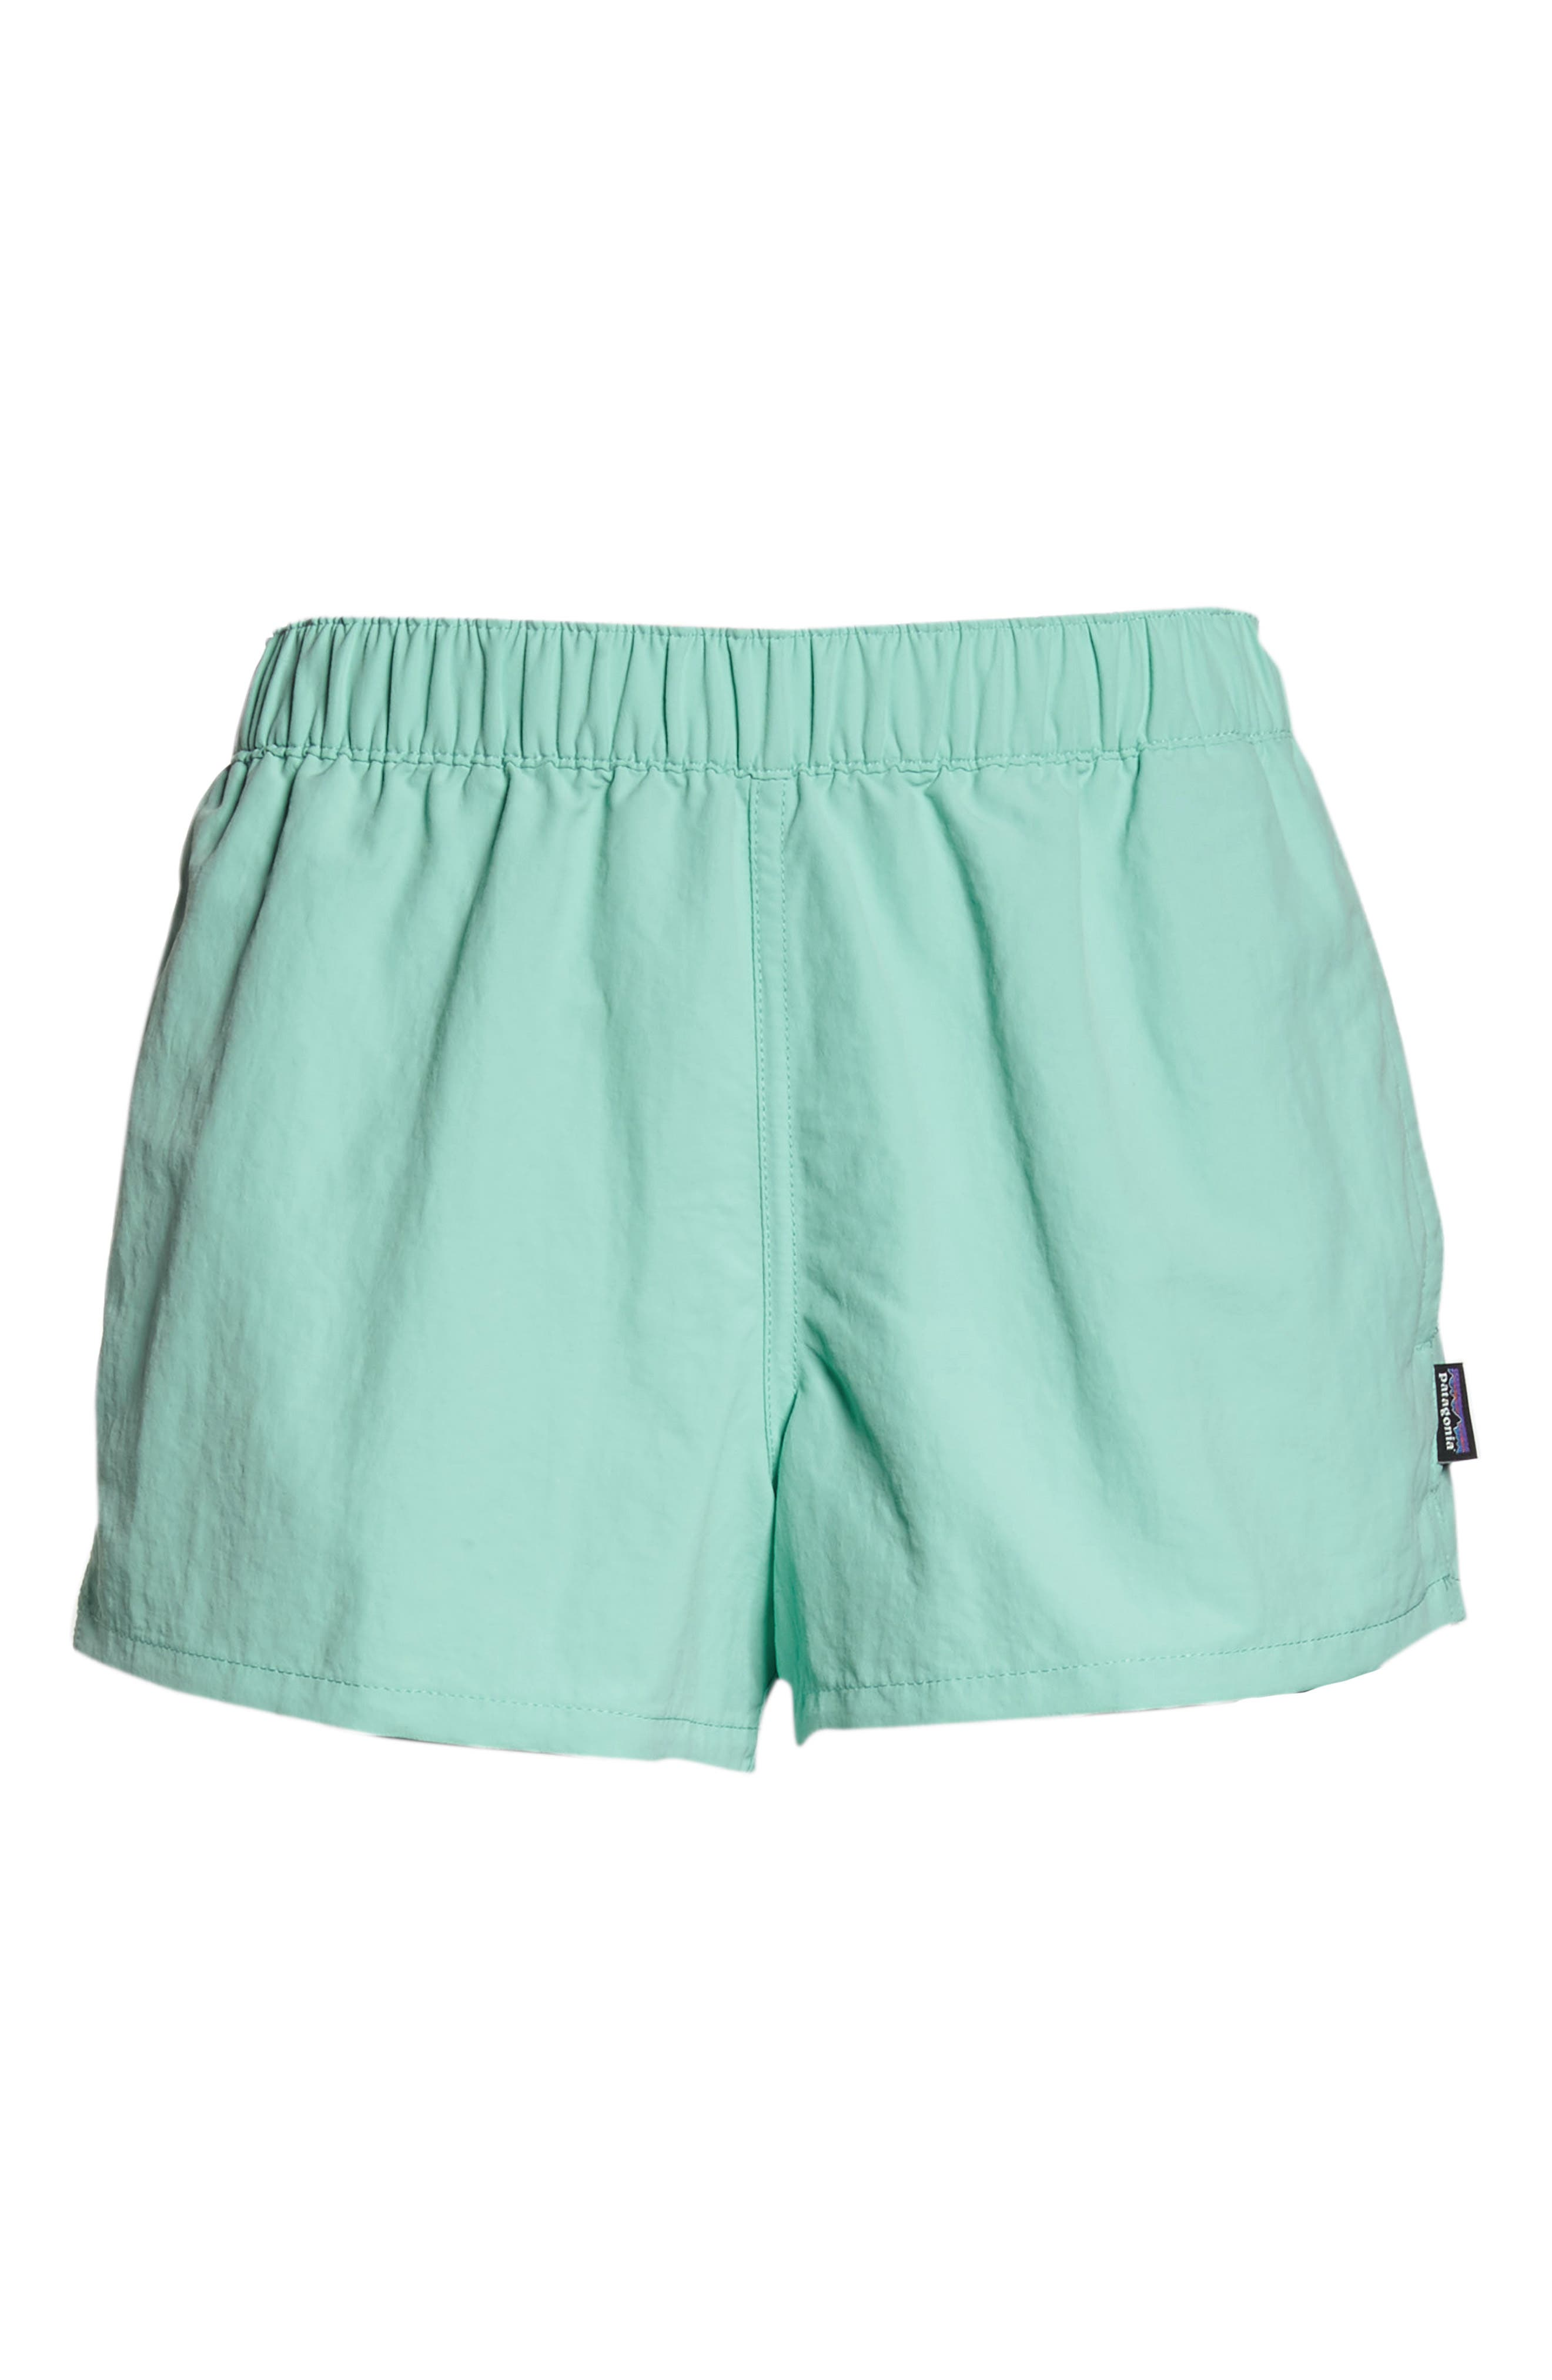 Barely Baggies Shorts,                             Alternate thumbnail 7, color,                             VJOSA GREEN